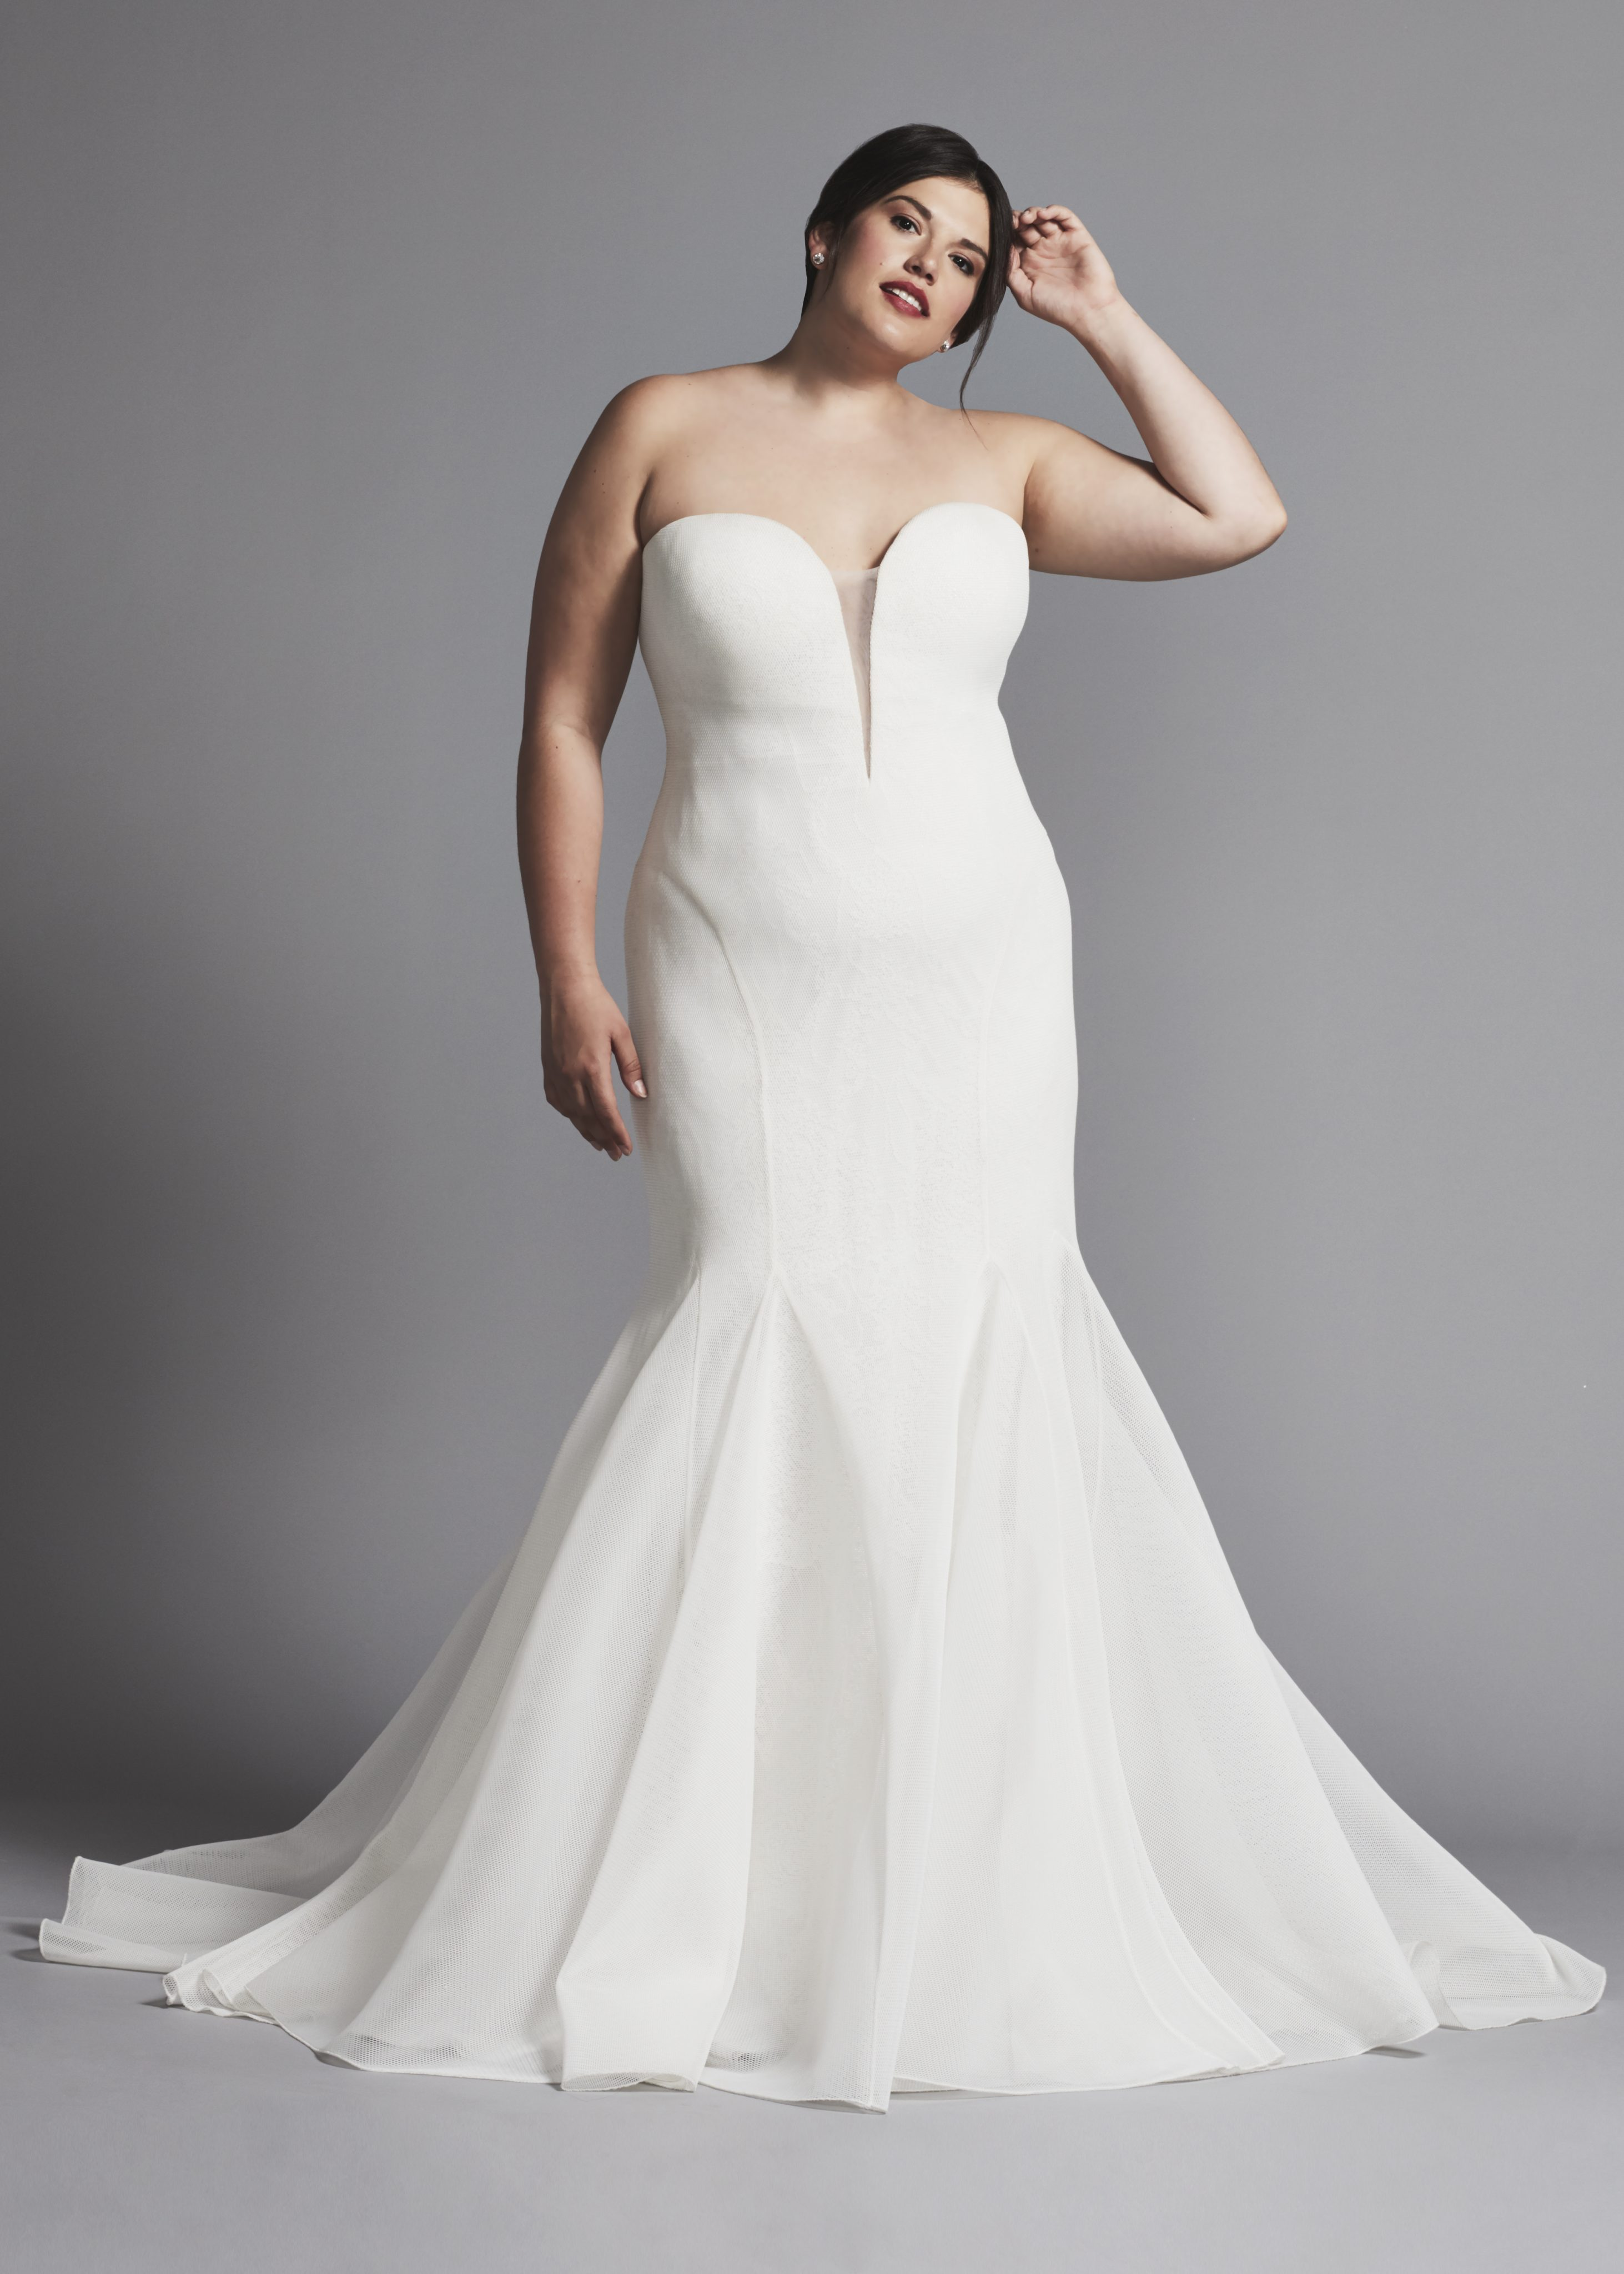 Strapless Fit And Flare Wedding Dress With Illusion V Neck